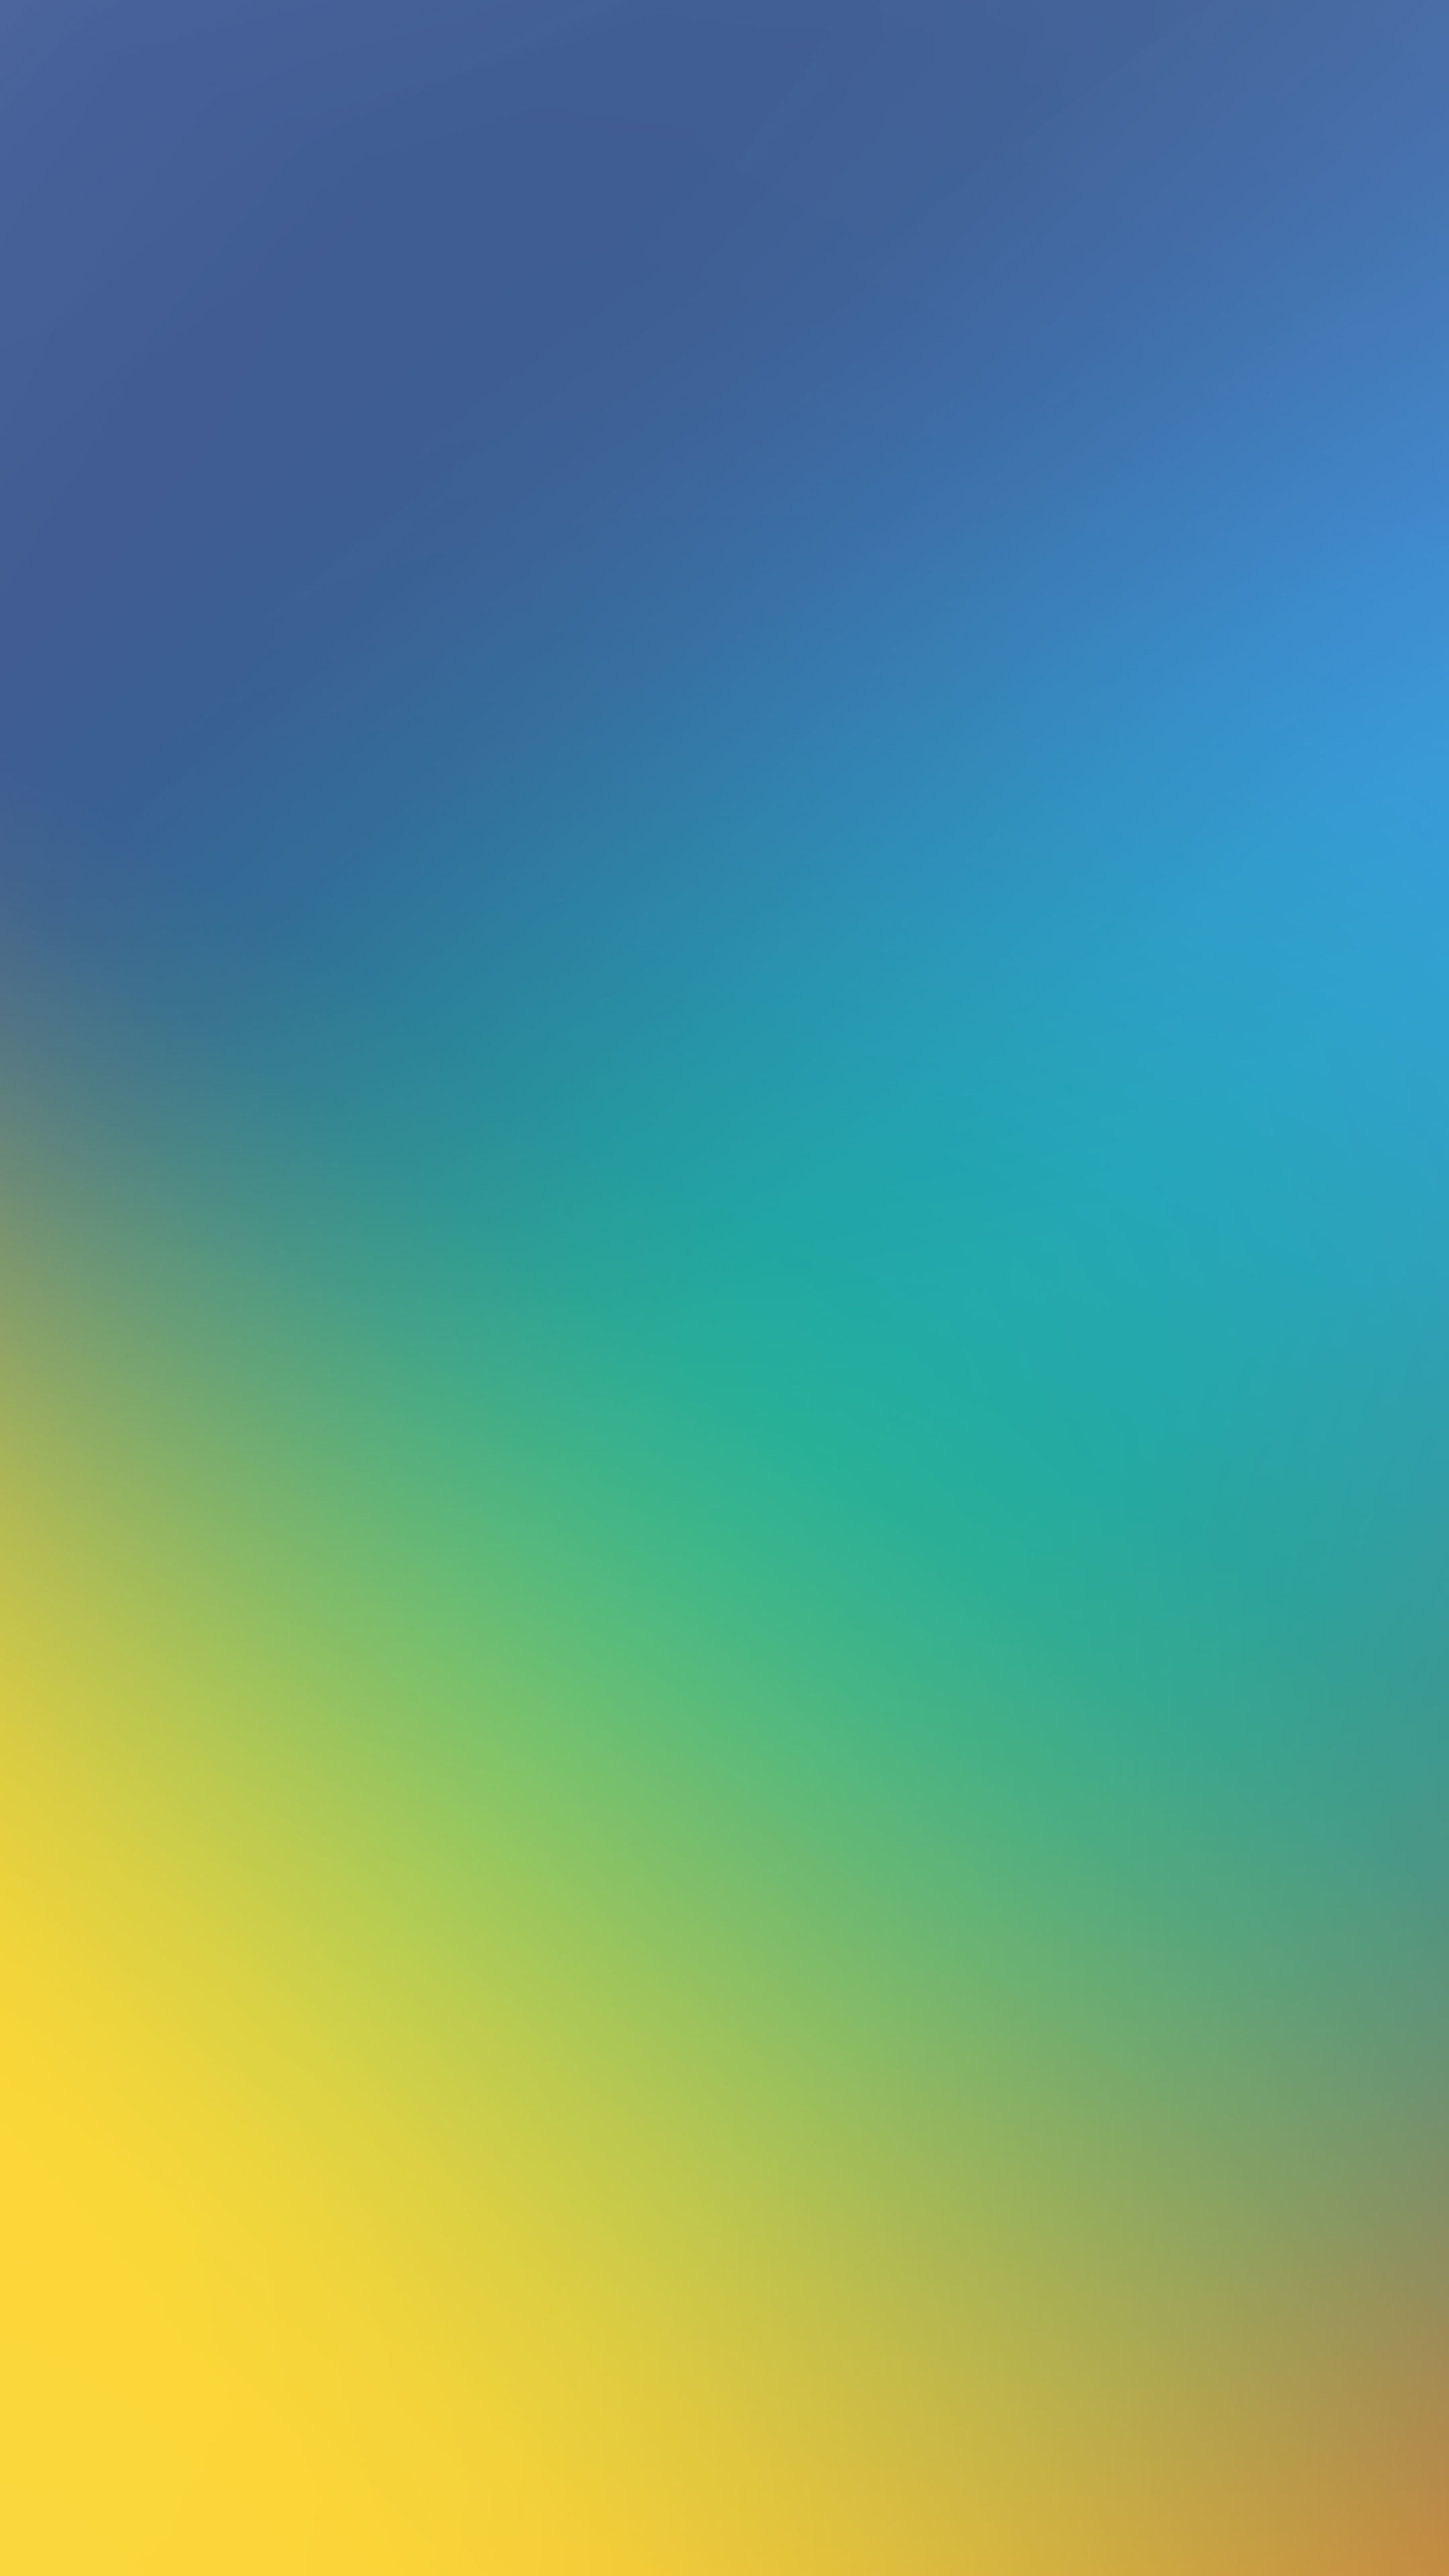 Sony Xperia Z5 Wallpaper 75 Images